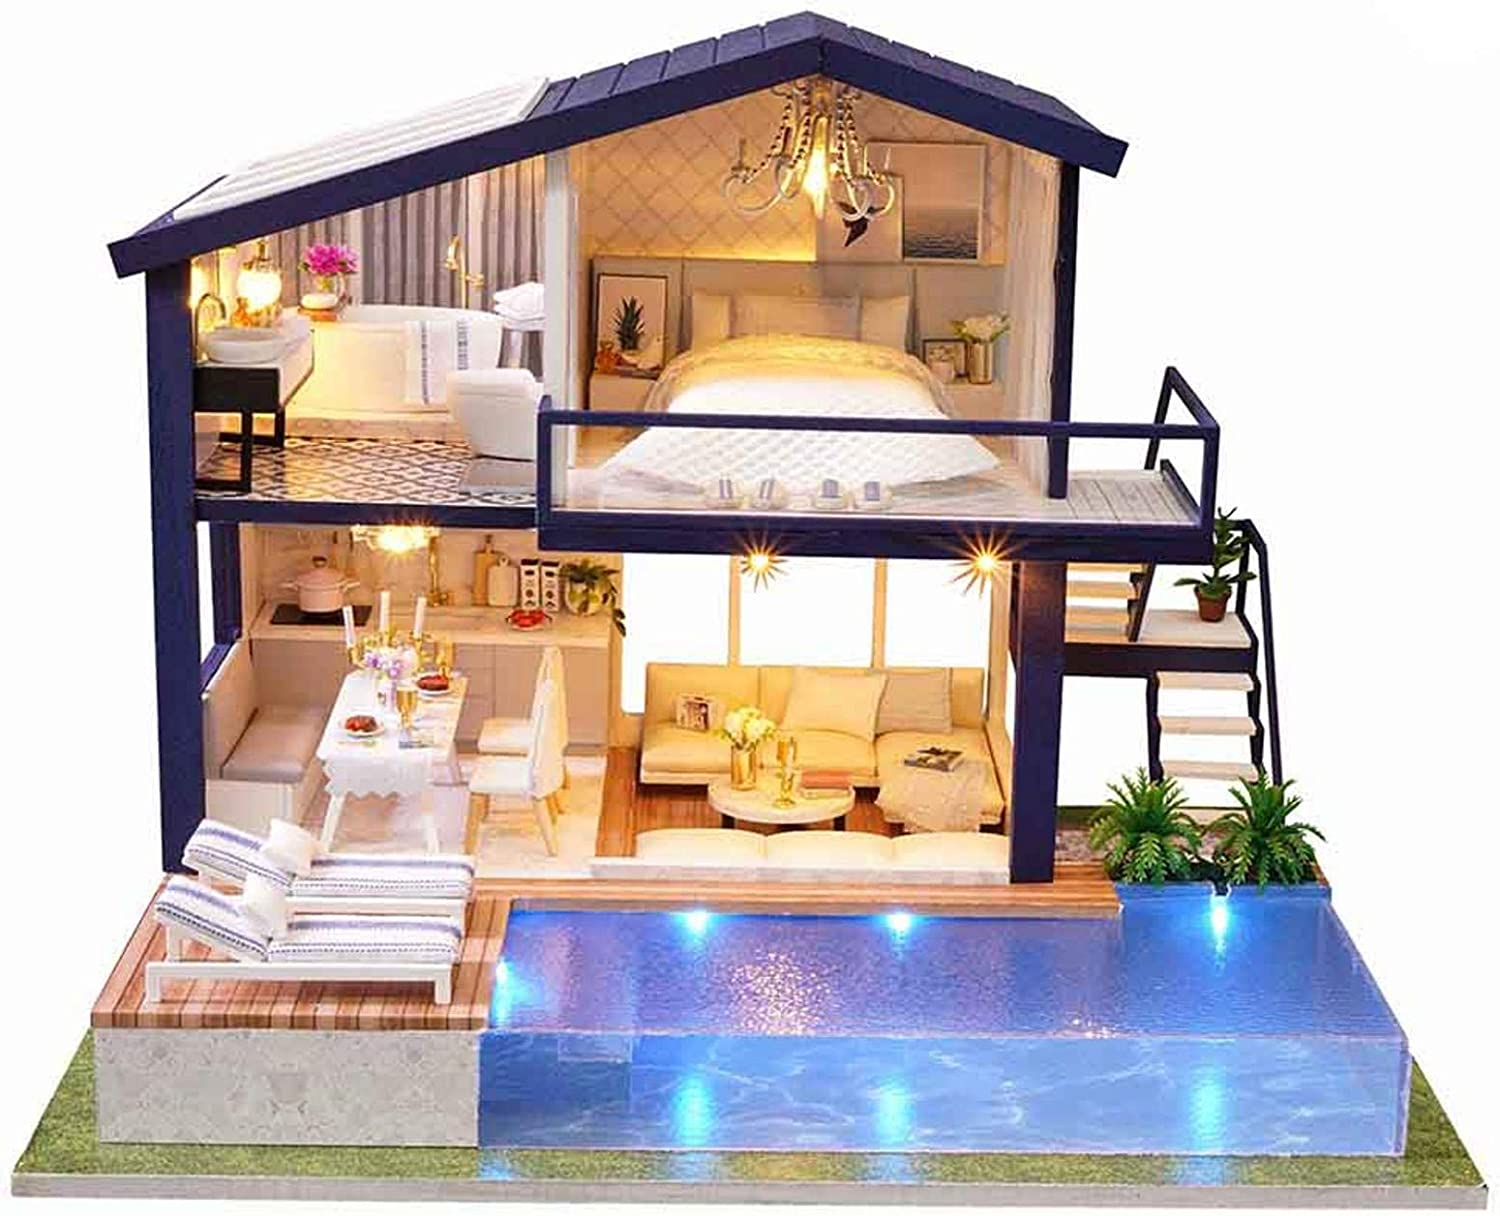 Daoxiang Dolls House Kit DIY Dollhouse 3D Miniature Min Wooden Max 90% OFF Indefinitely